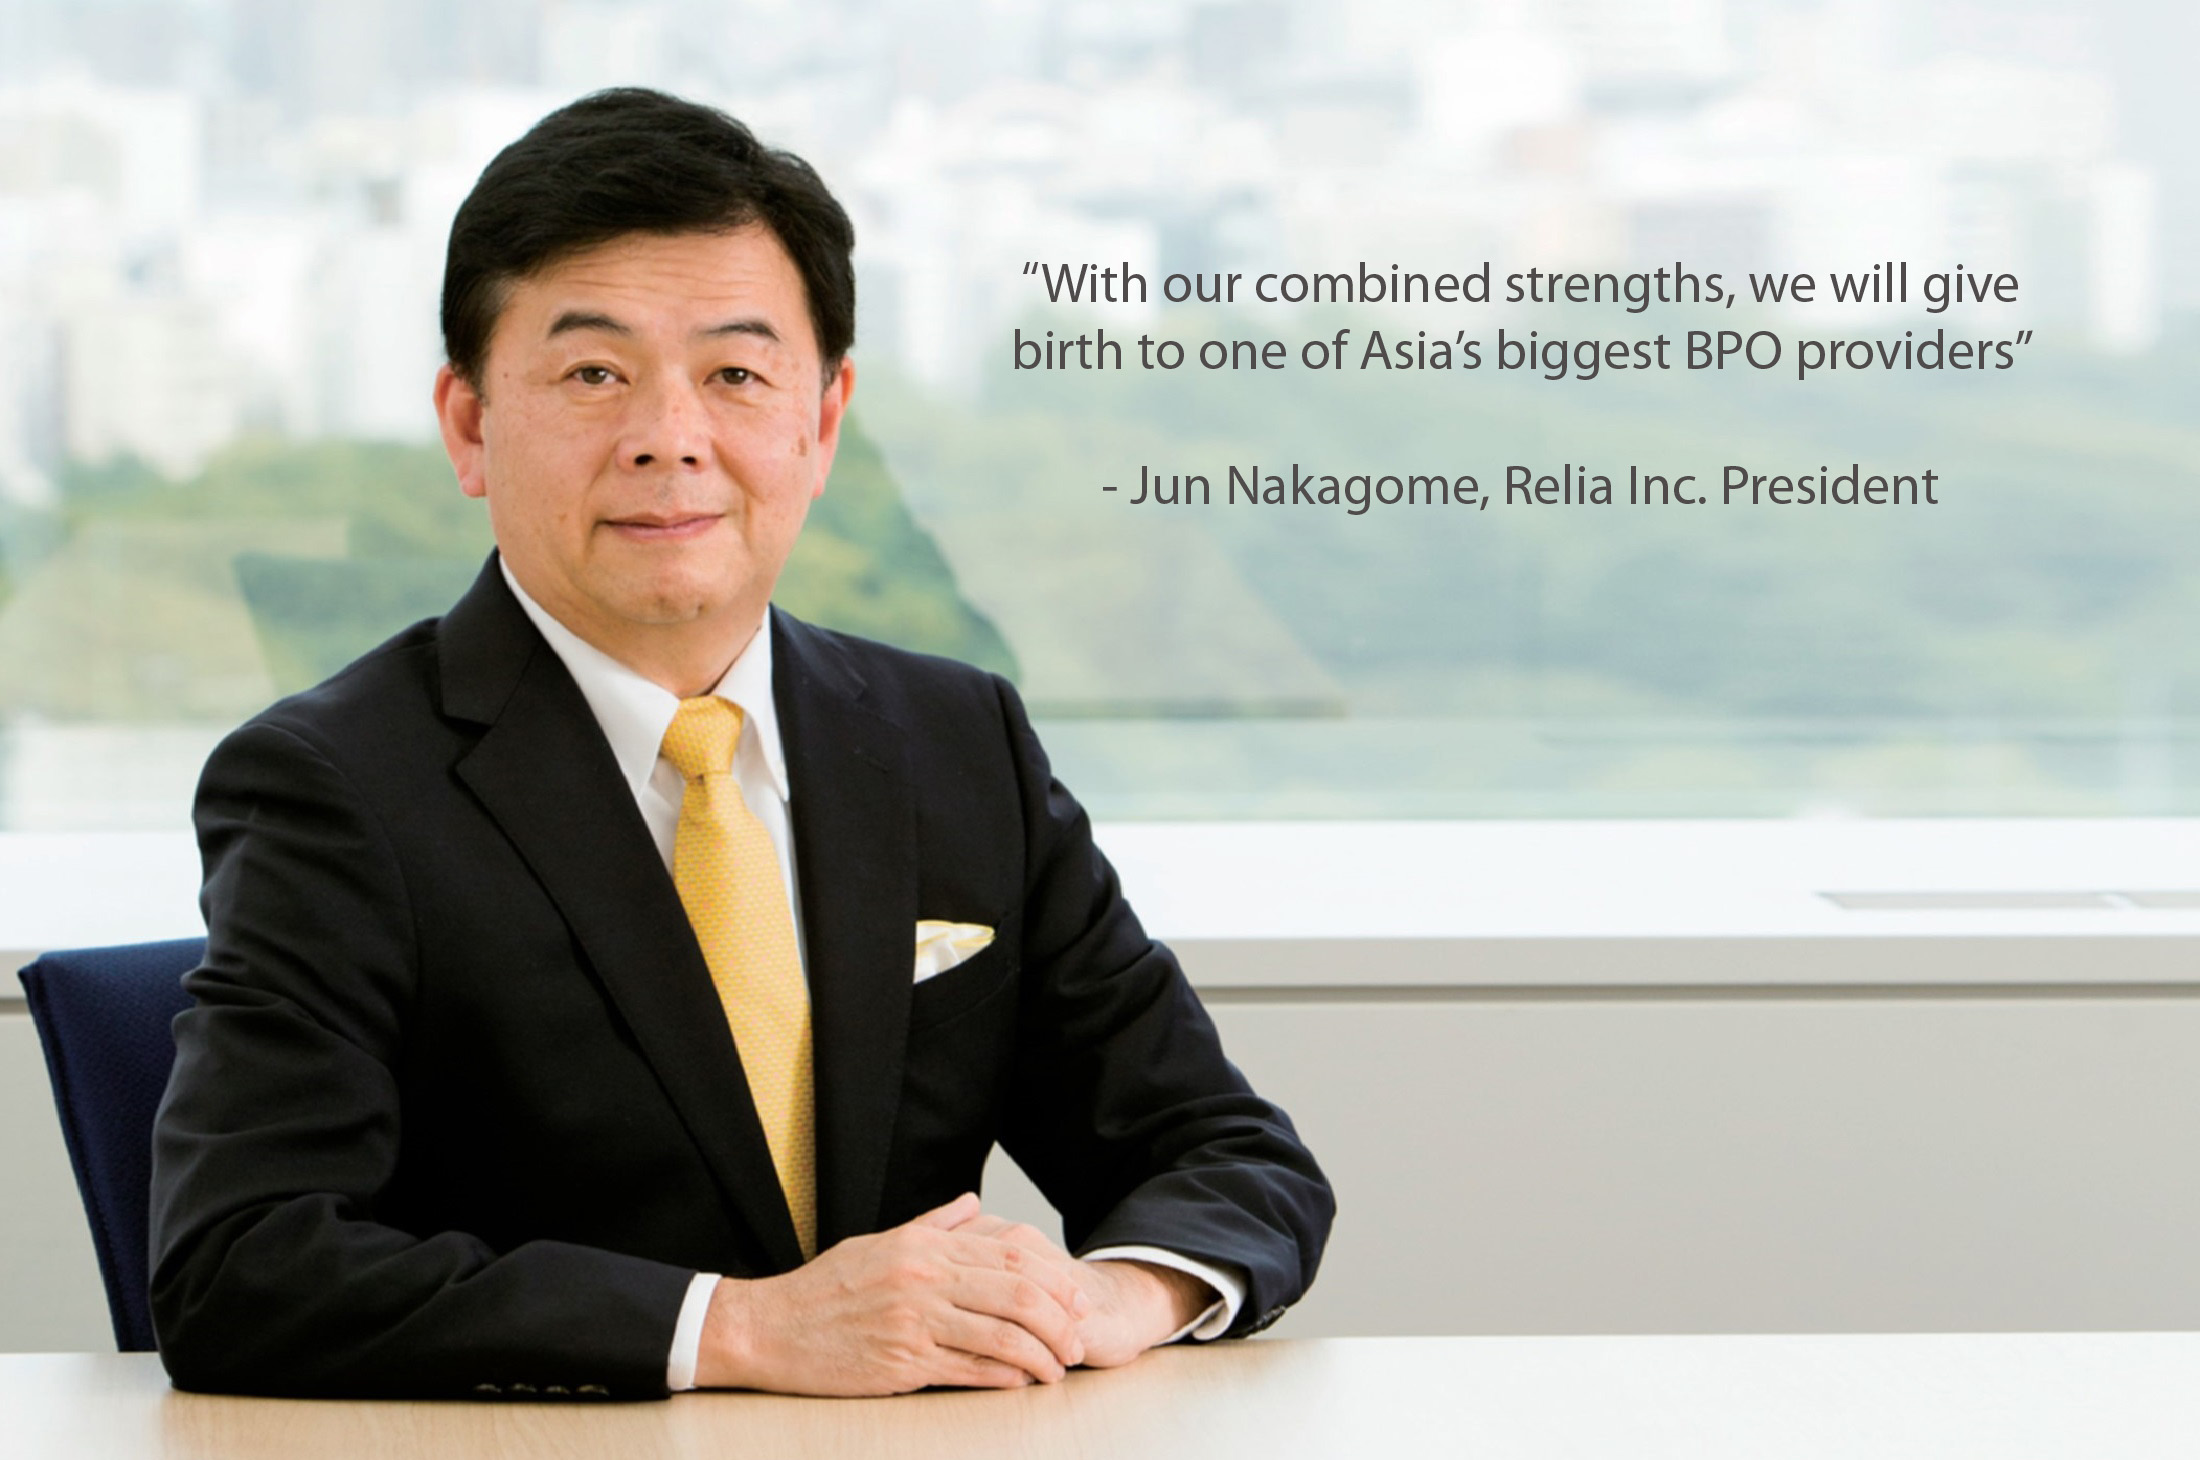 Jun Nakagome President of Relia Inc.